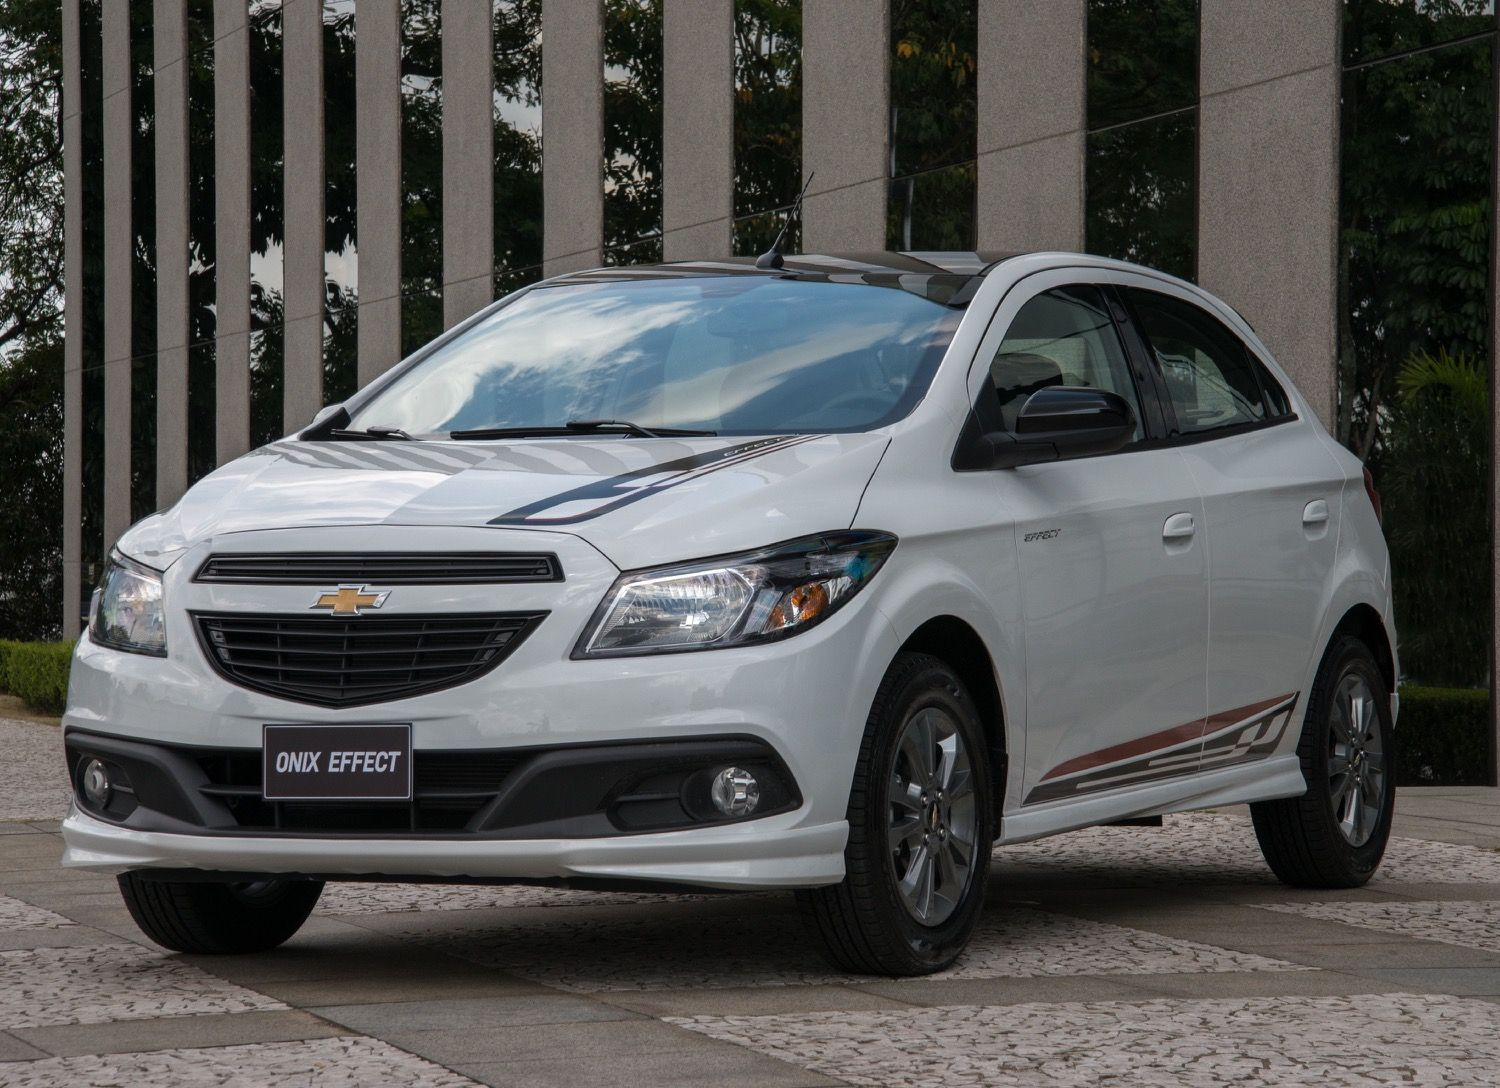 2015 Chevrolet Onix Effect Gm Authority Autos Nuevos Autos